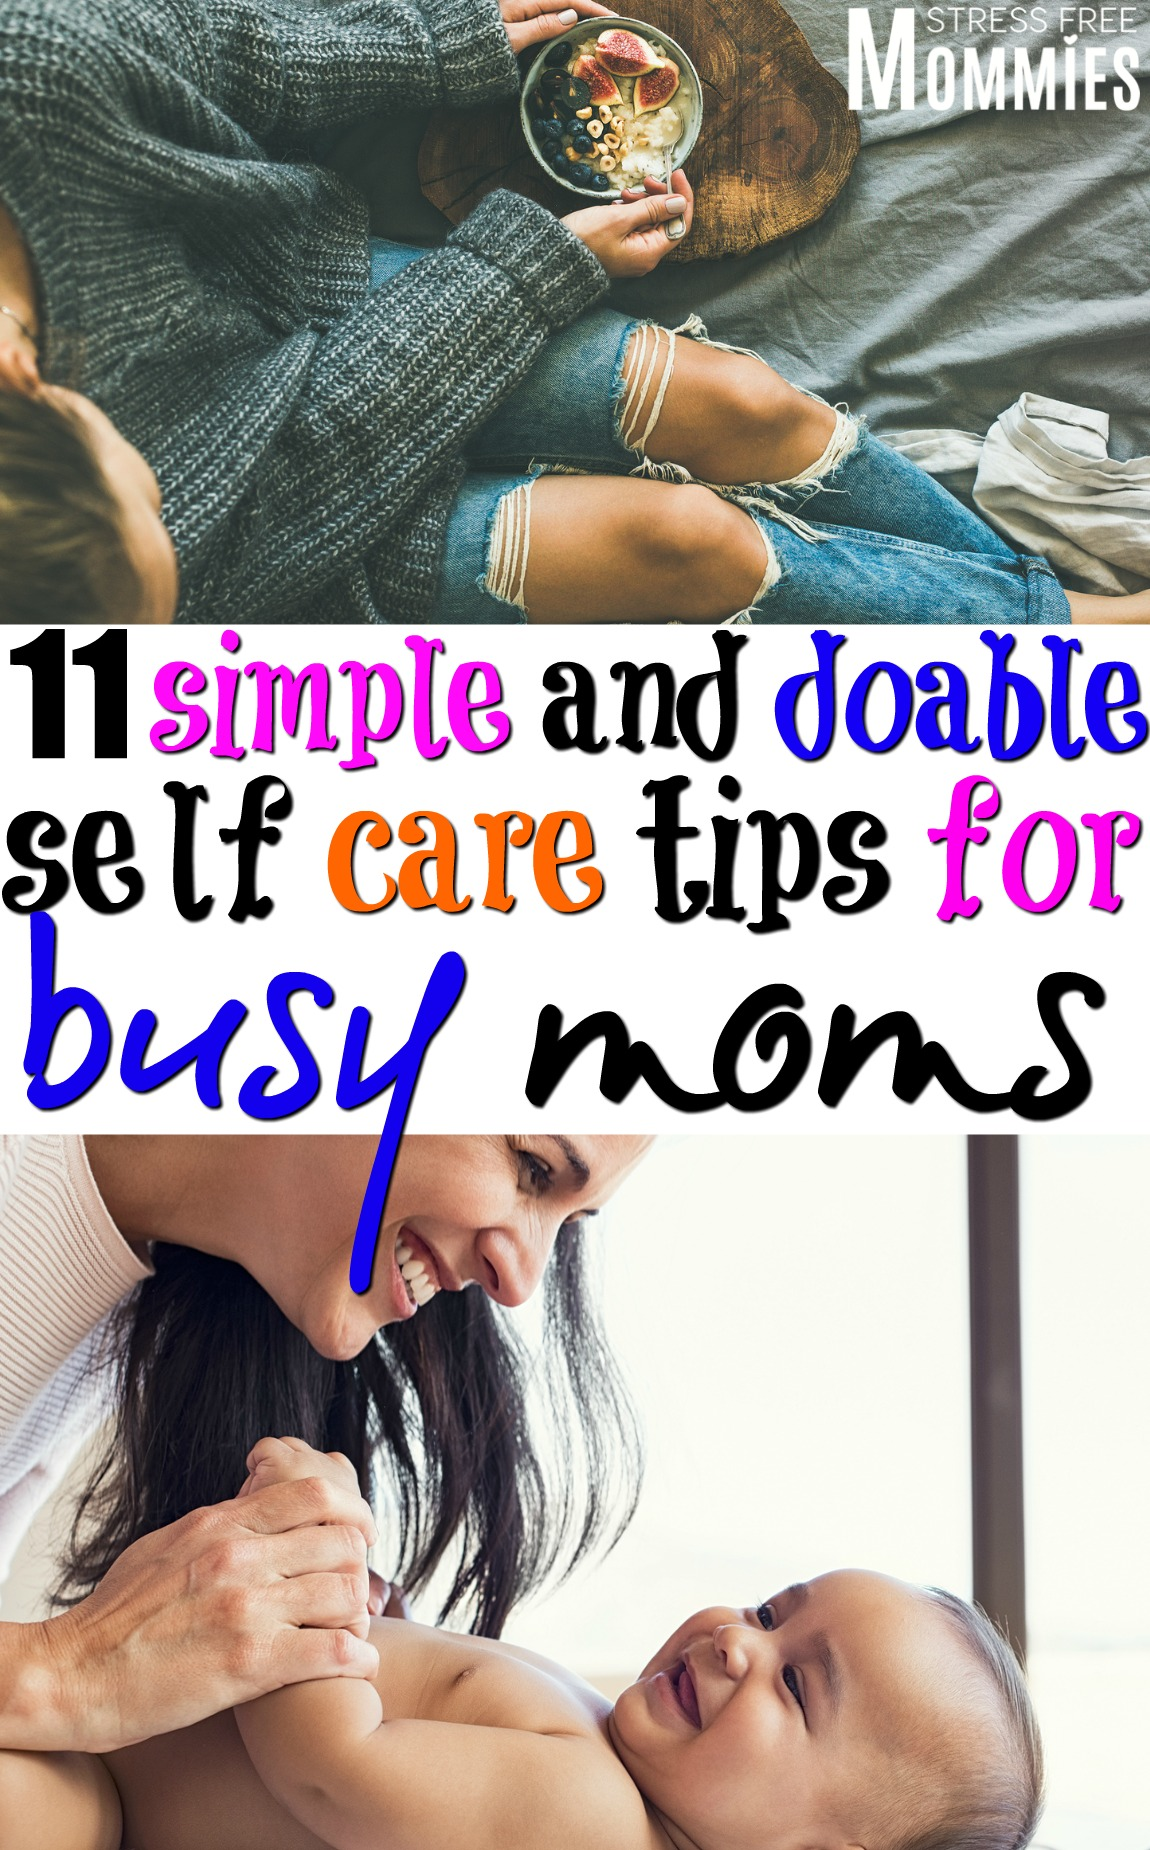 11 simple and doable self care tips for busy moms